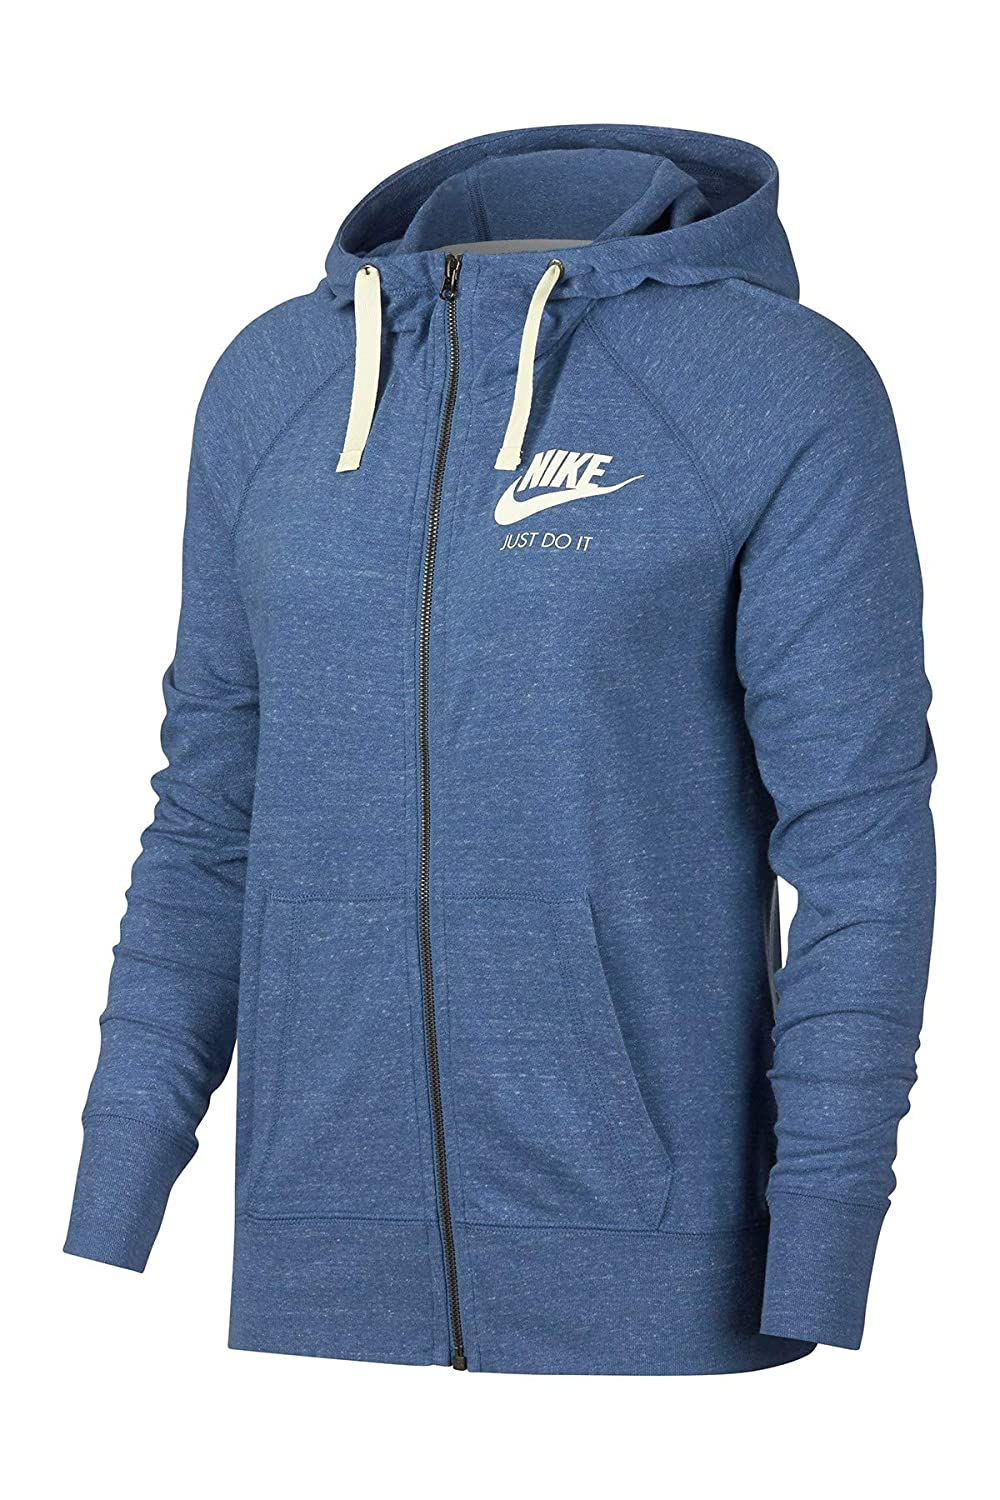 Amazon.com: Nike Womens Gym Vintage Full Zip Hoodie: Clothing